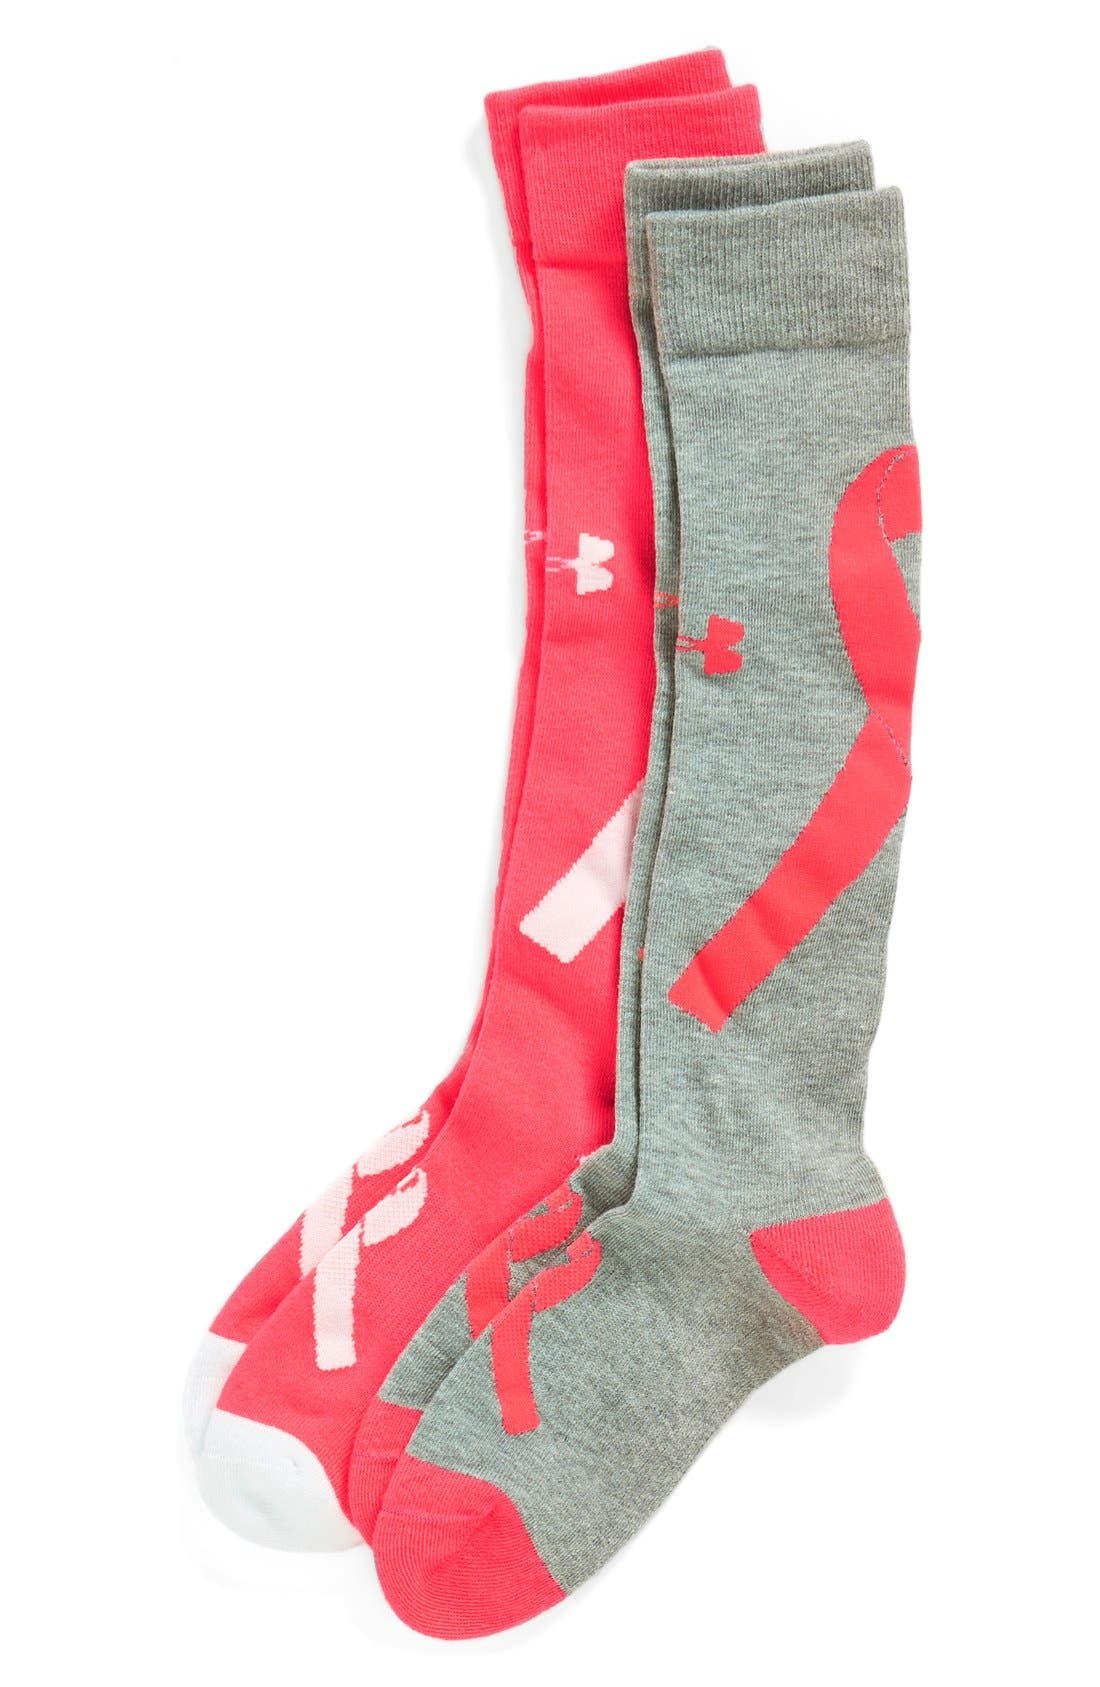 Alternate Image 1 Selected - Under Armour 'Power In Pink' Socks